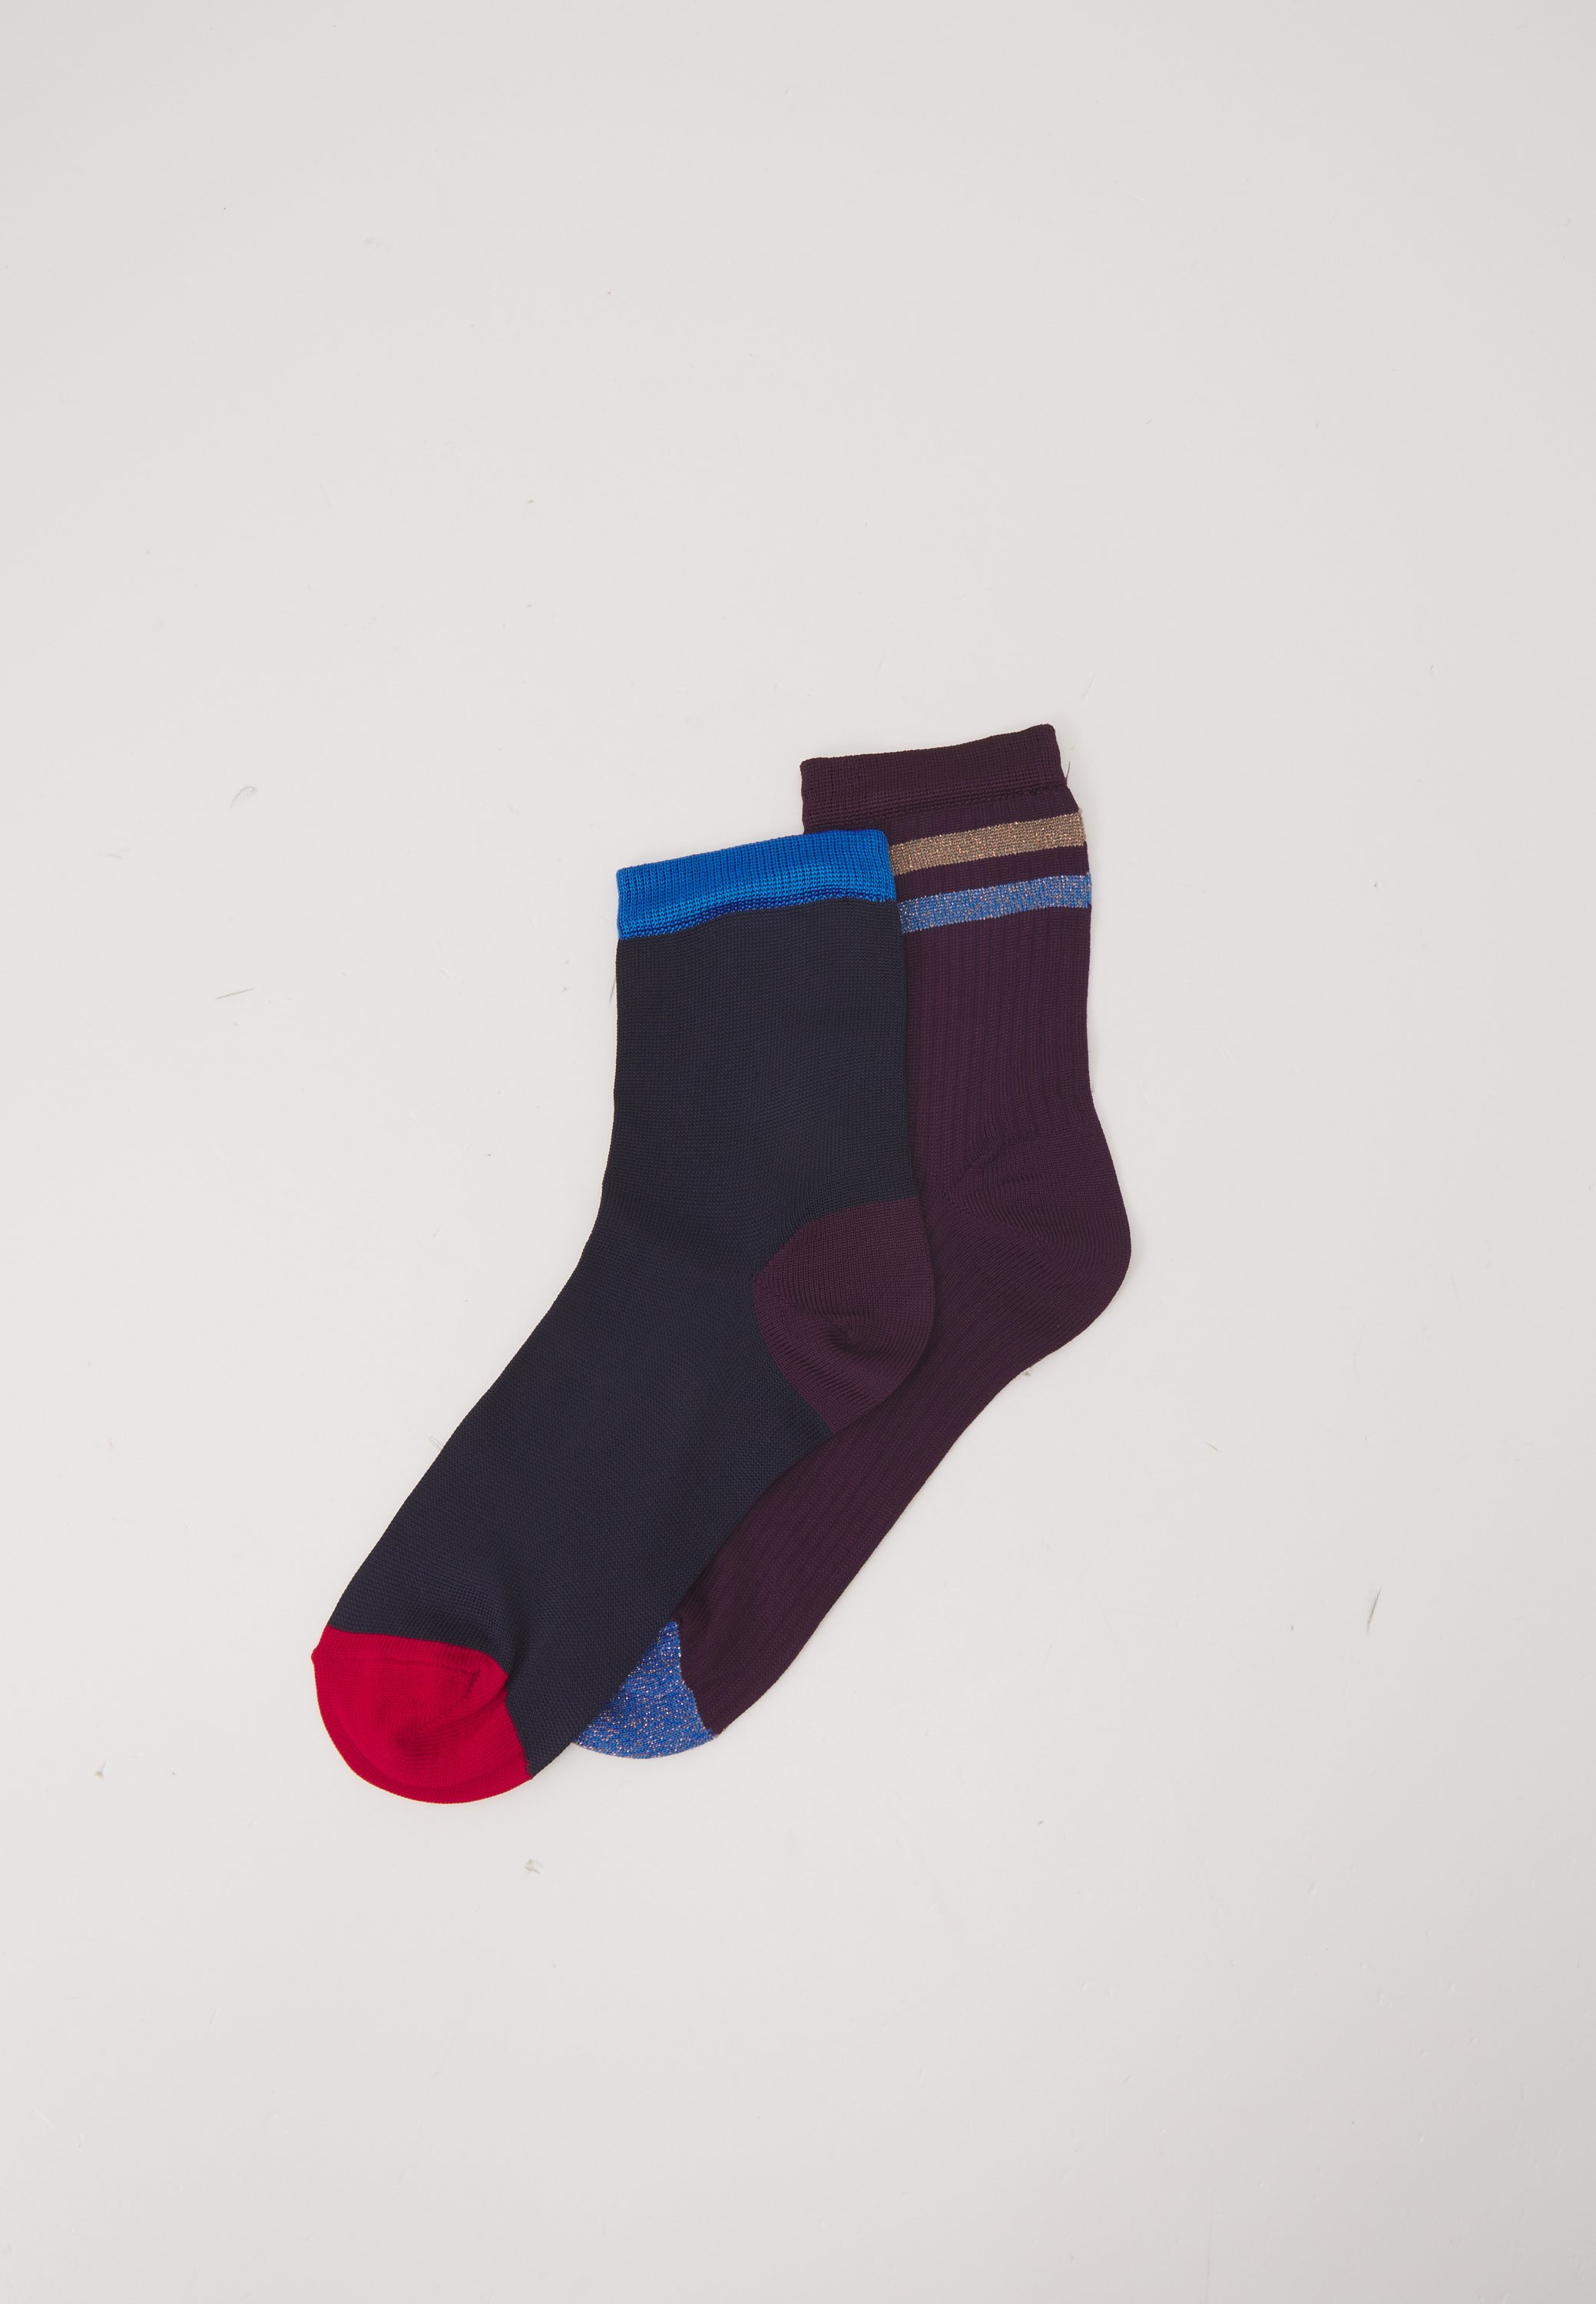 Femme GRACE + INES 2 PACK - Chaussettes